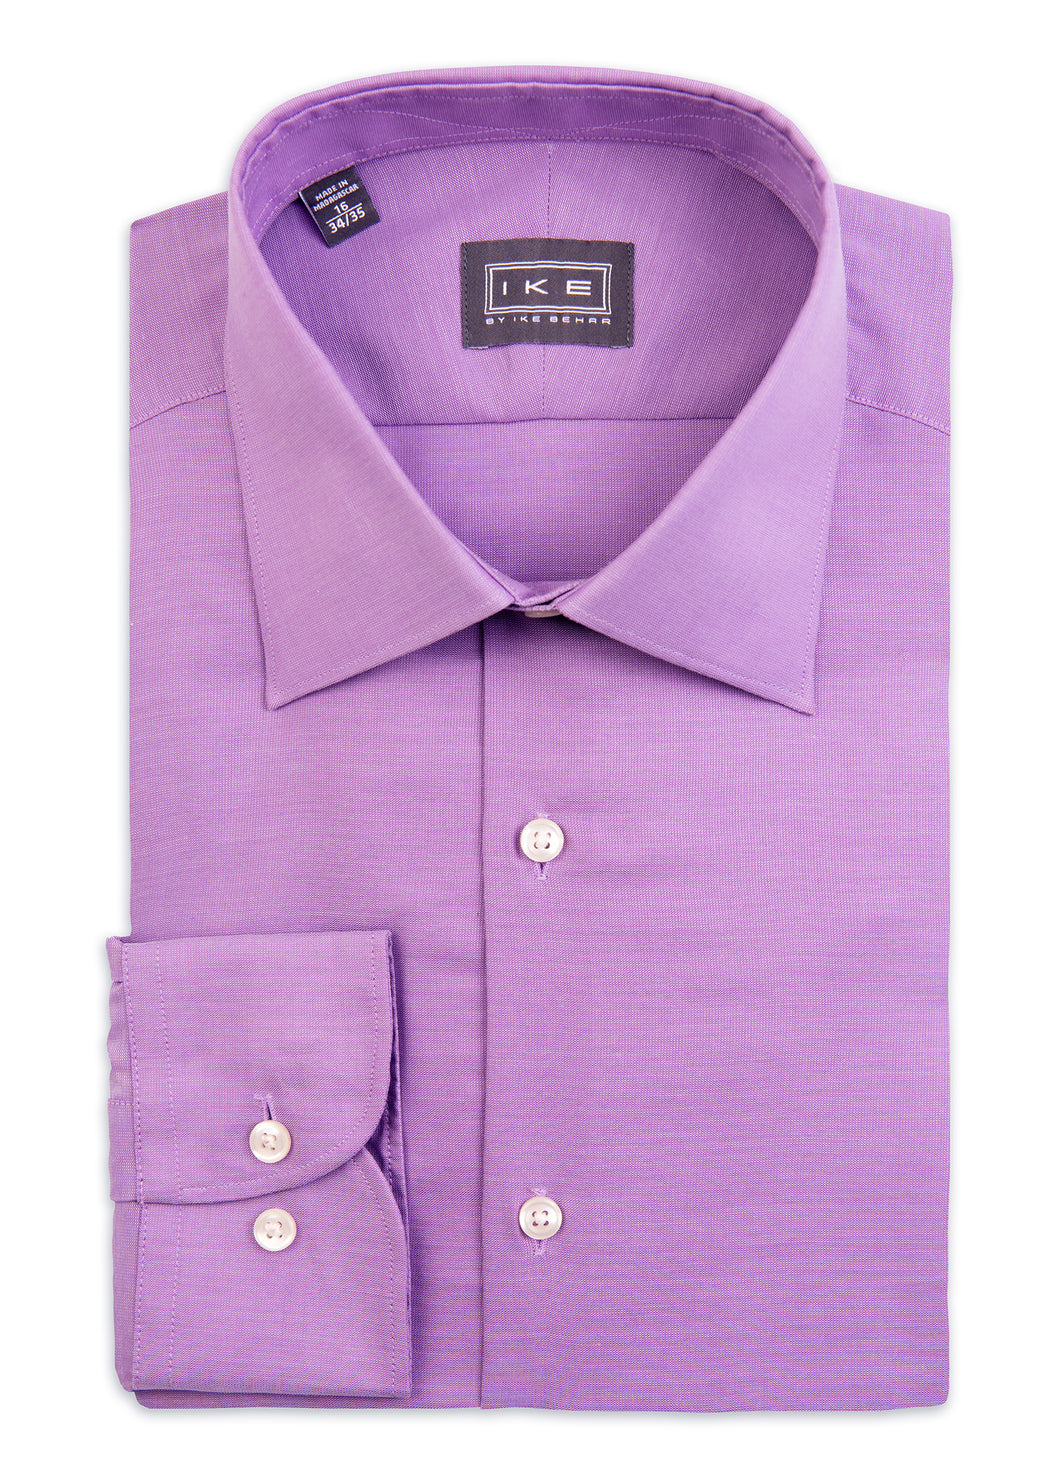 Lavender Textured Ike by Ike Behar Dress Shirt